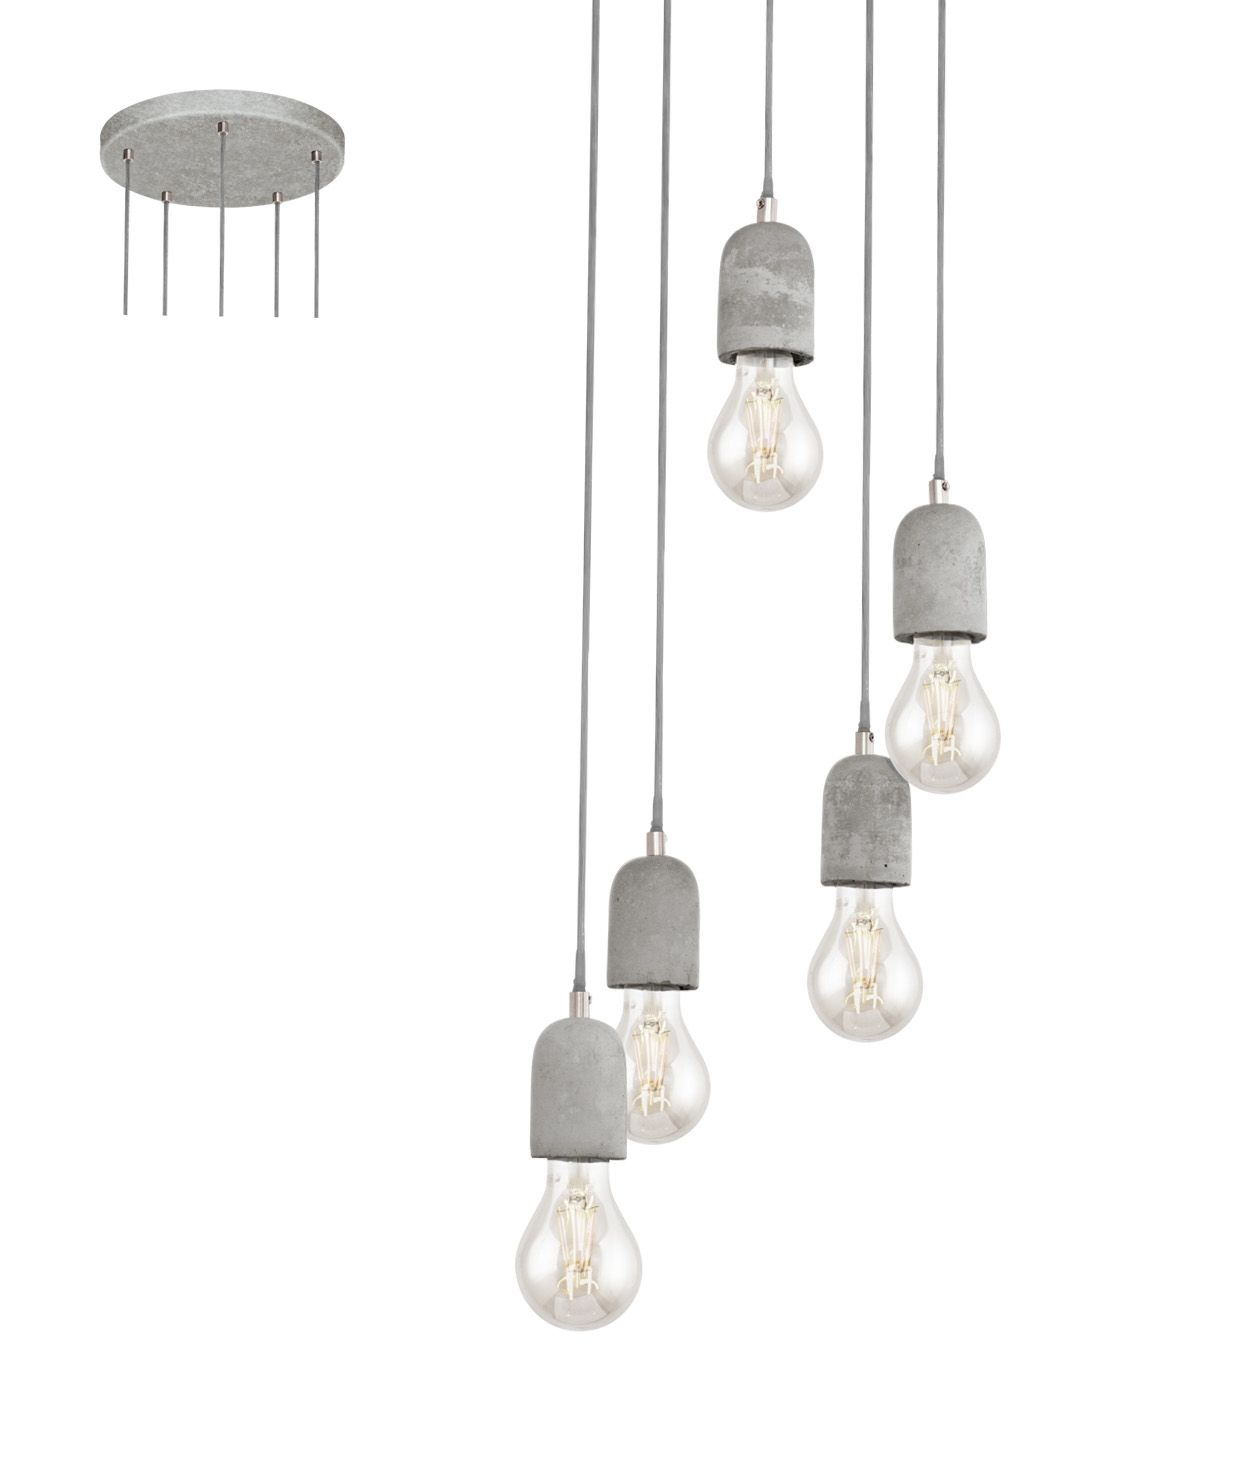 Cer Bare Bulb Pendant In Concrete